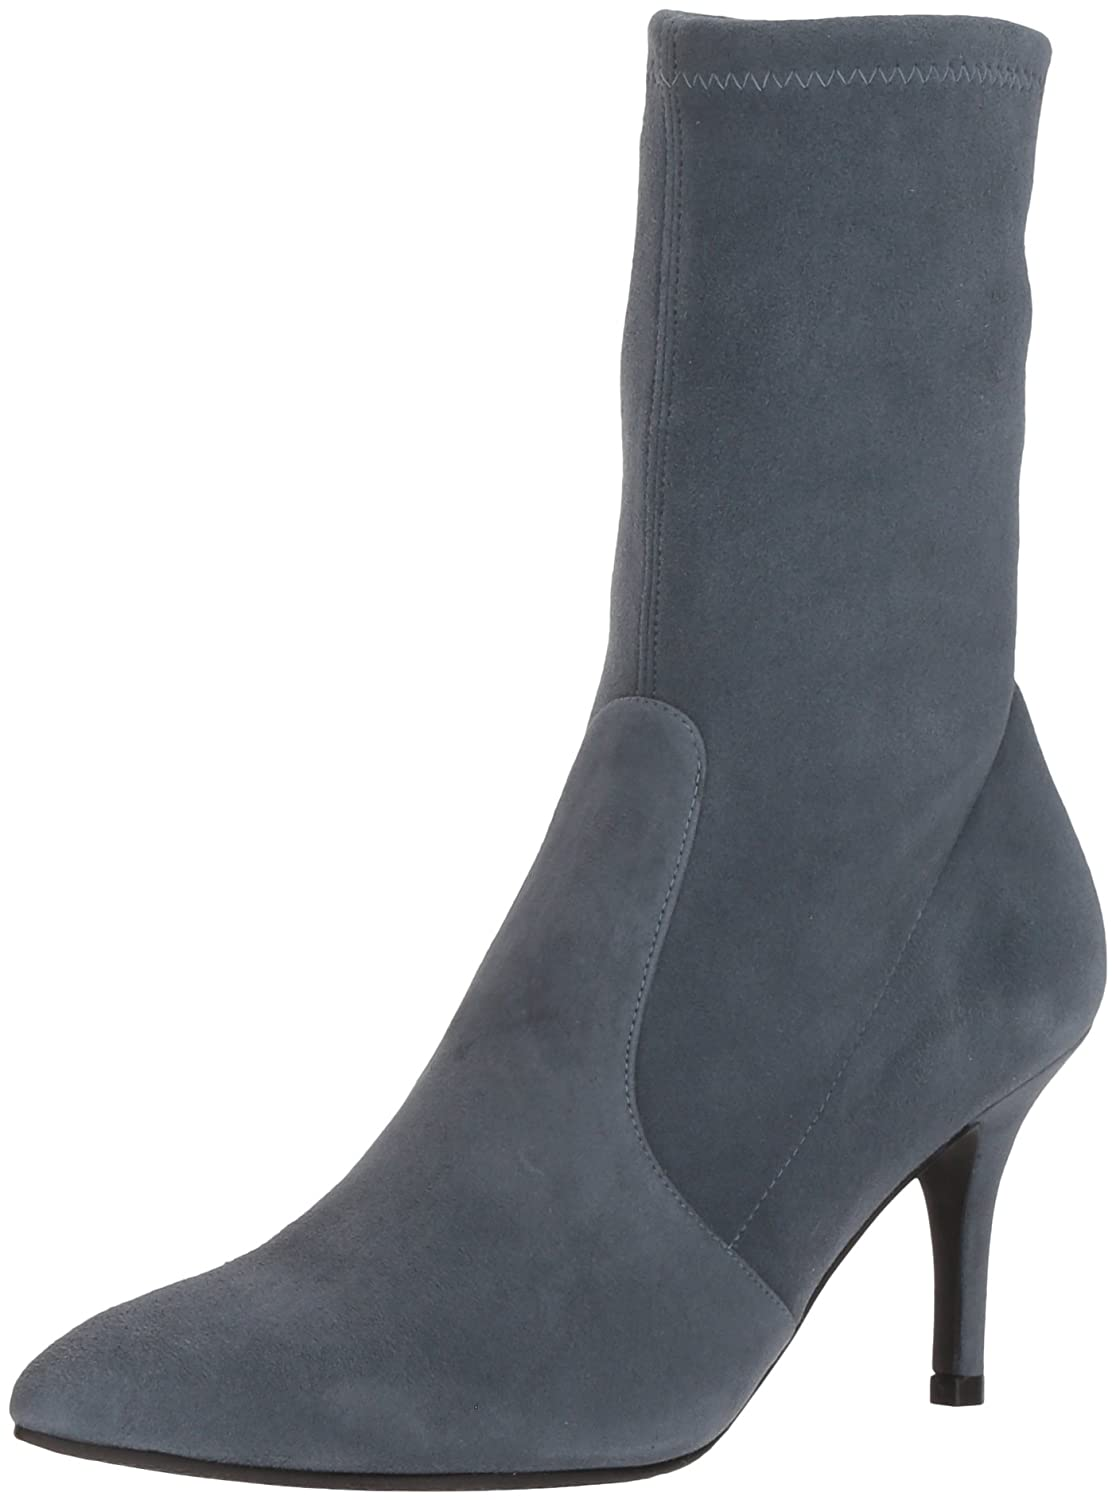 Stuart Weitzman Women's Cling Ankle Boot B07954T4NM 5 B(M) US|Denim Suede